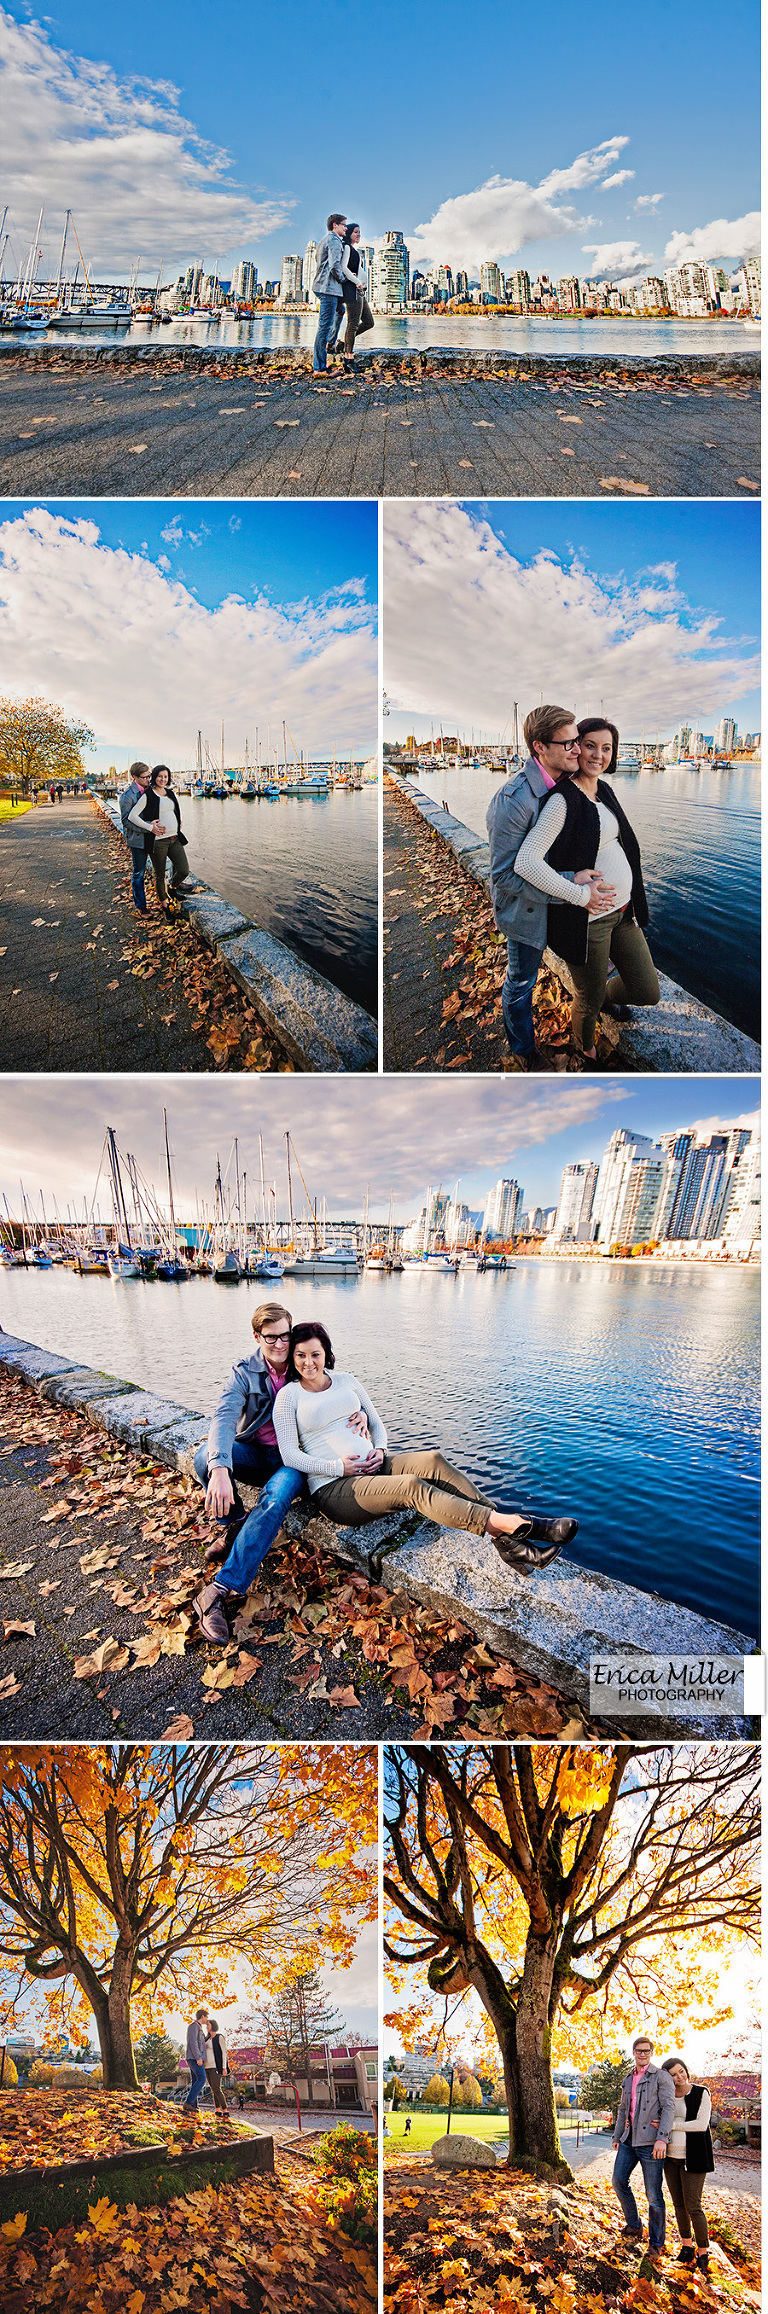 false creek maternity photographs